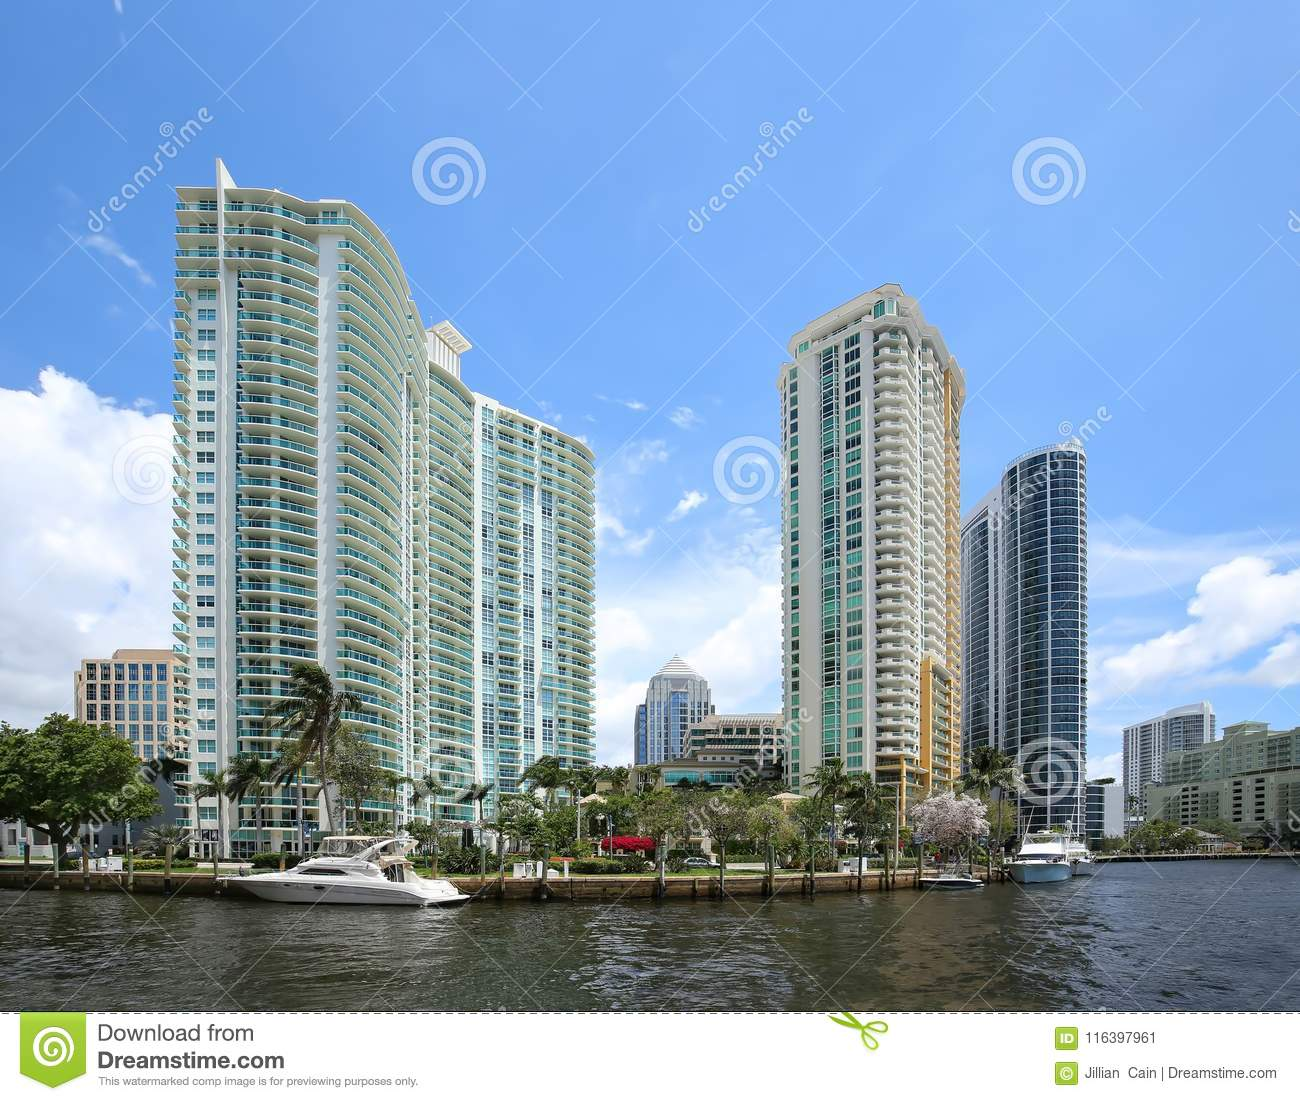 Riverfront Apartments: Waterfront Living In Downtown Fort Lauderdale, Florida